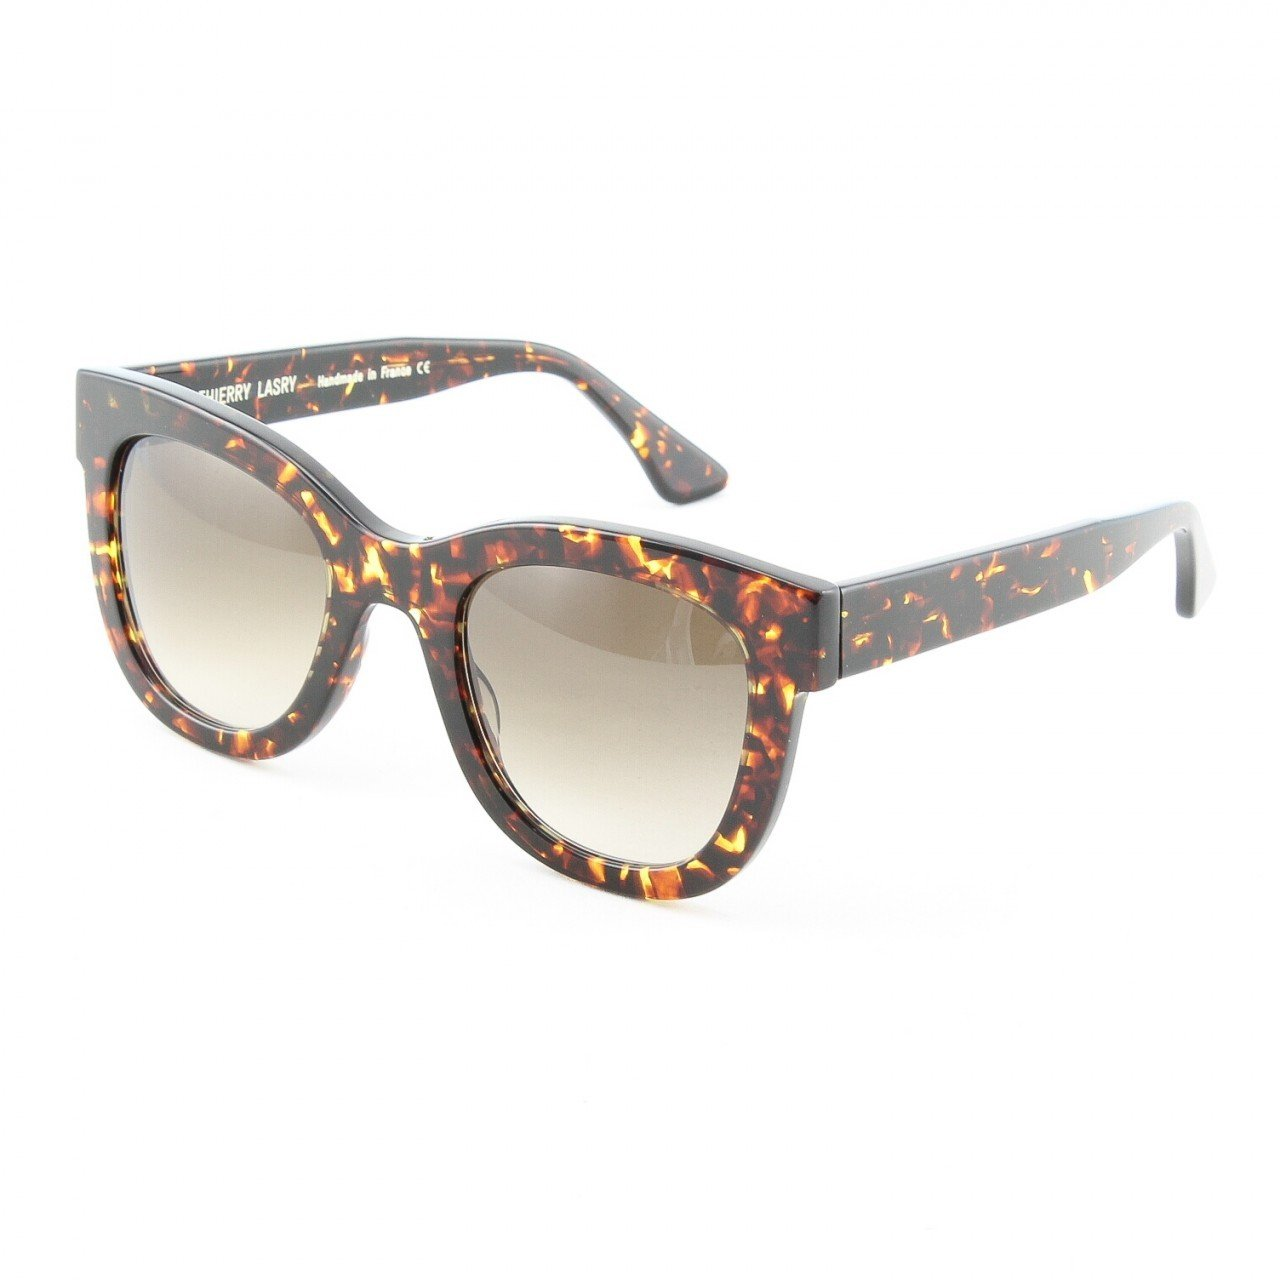 Thierry Lasry Obsessy Sunglasses 420 Brown Gold Marble Frame Grey Gradient Lens